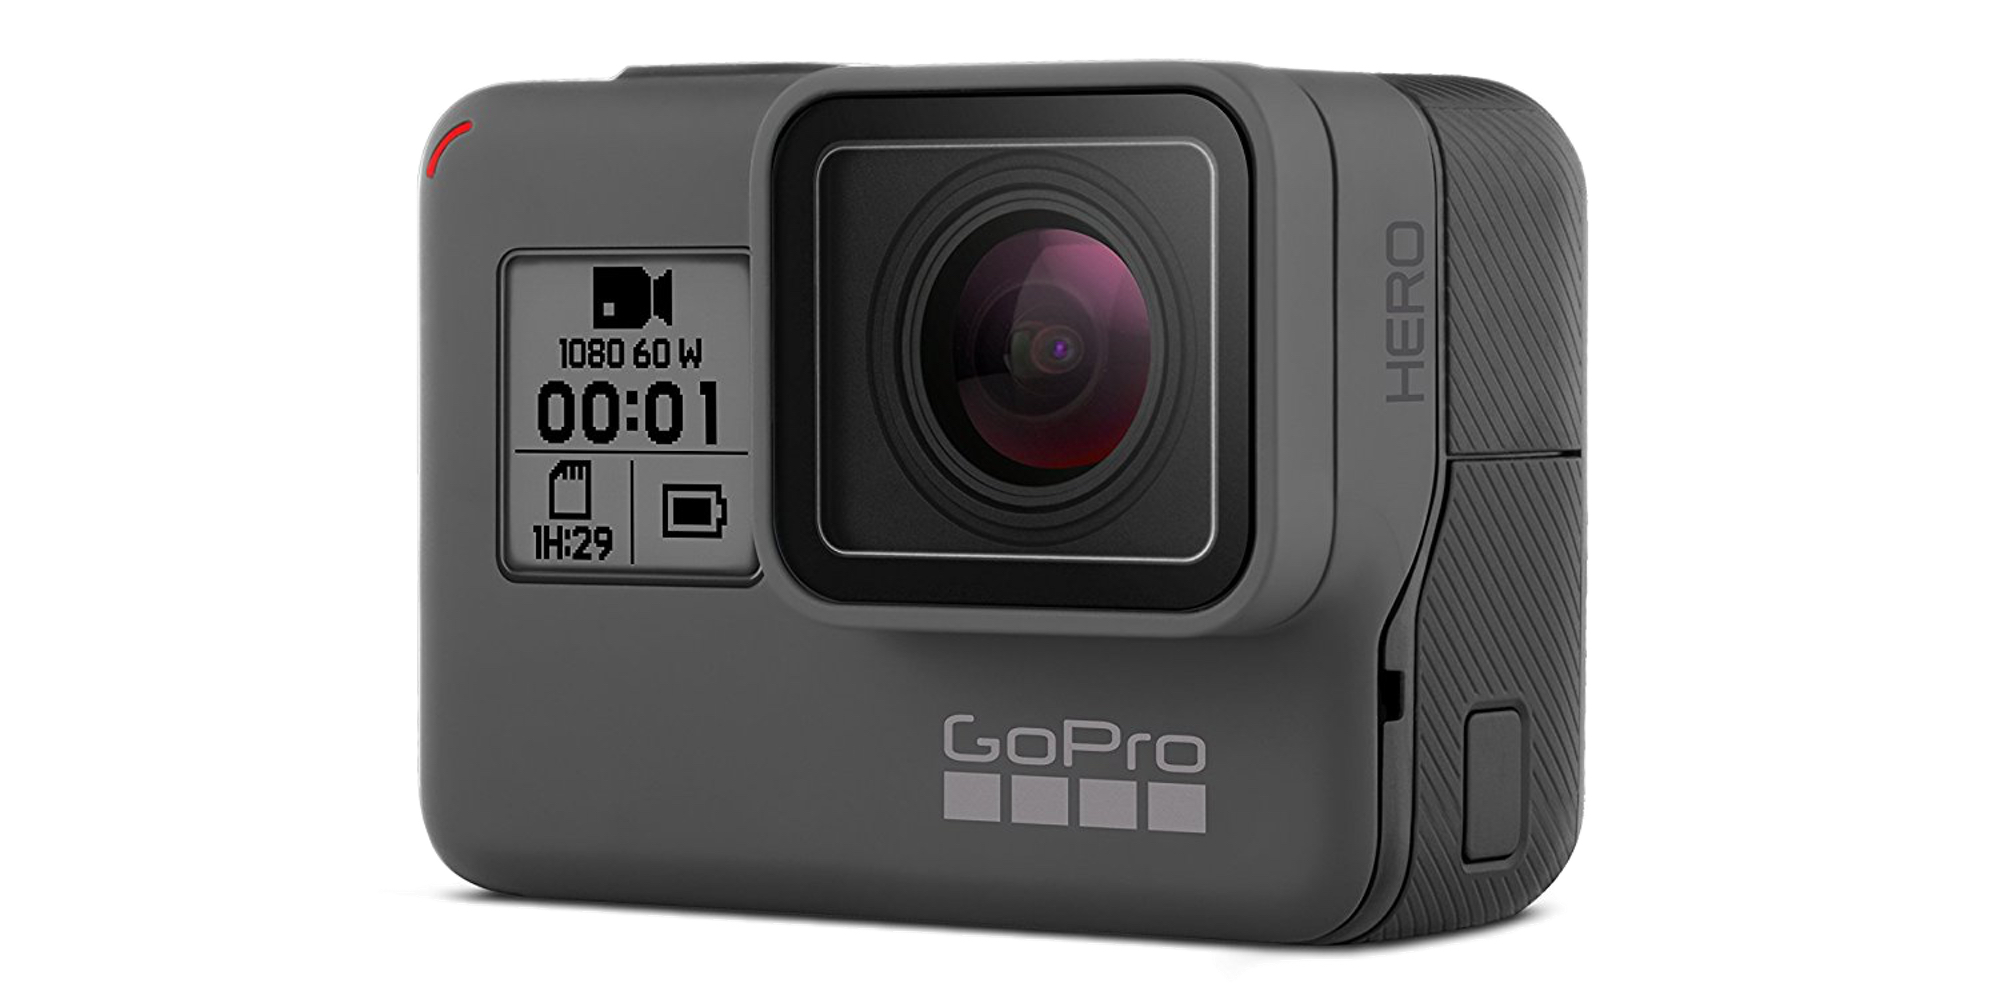 GoPro's latest HERO 1080p Action Cam returns to Amazon low at $154 (23% off)